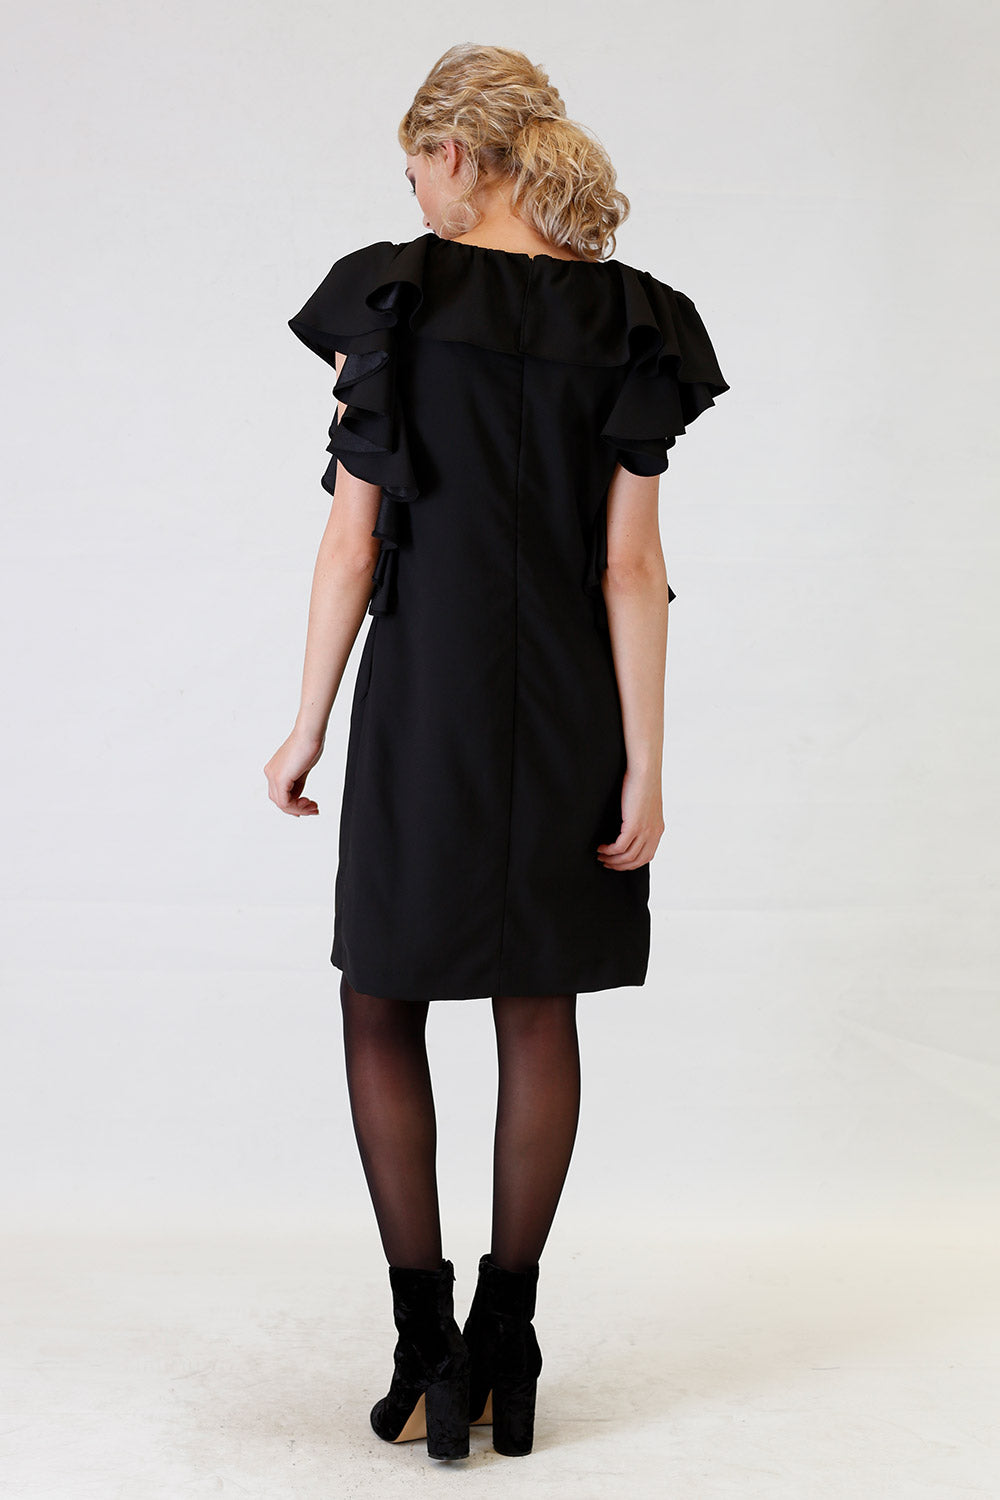 Oprah Dress | Occassion Dresses | Day Dresses |  Winter Fashion  | New Zealand Designer  | Annah Stretton